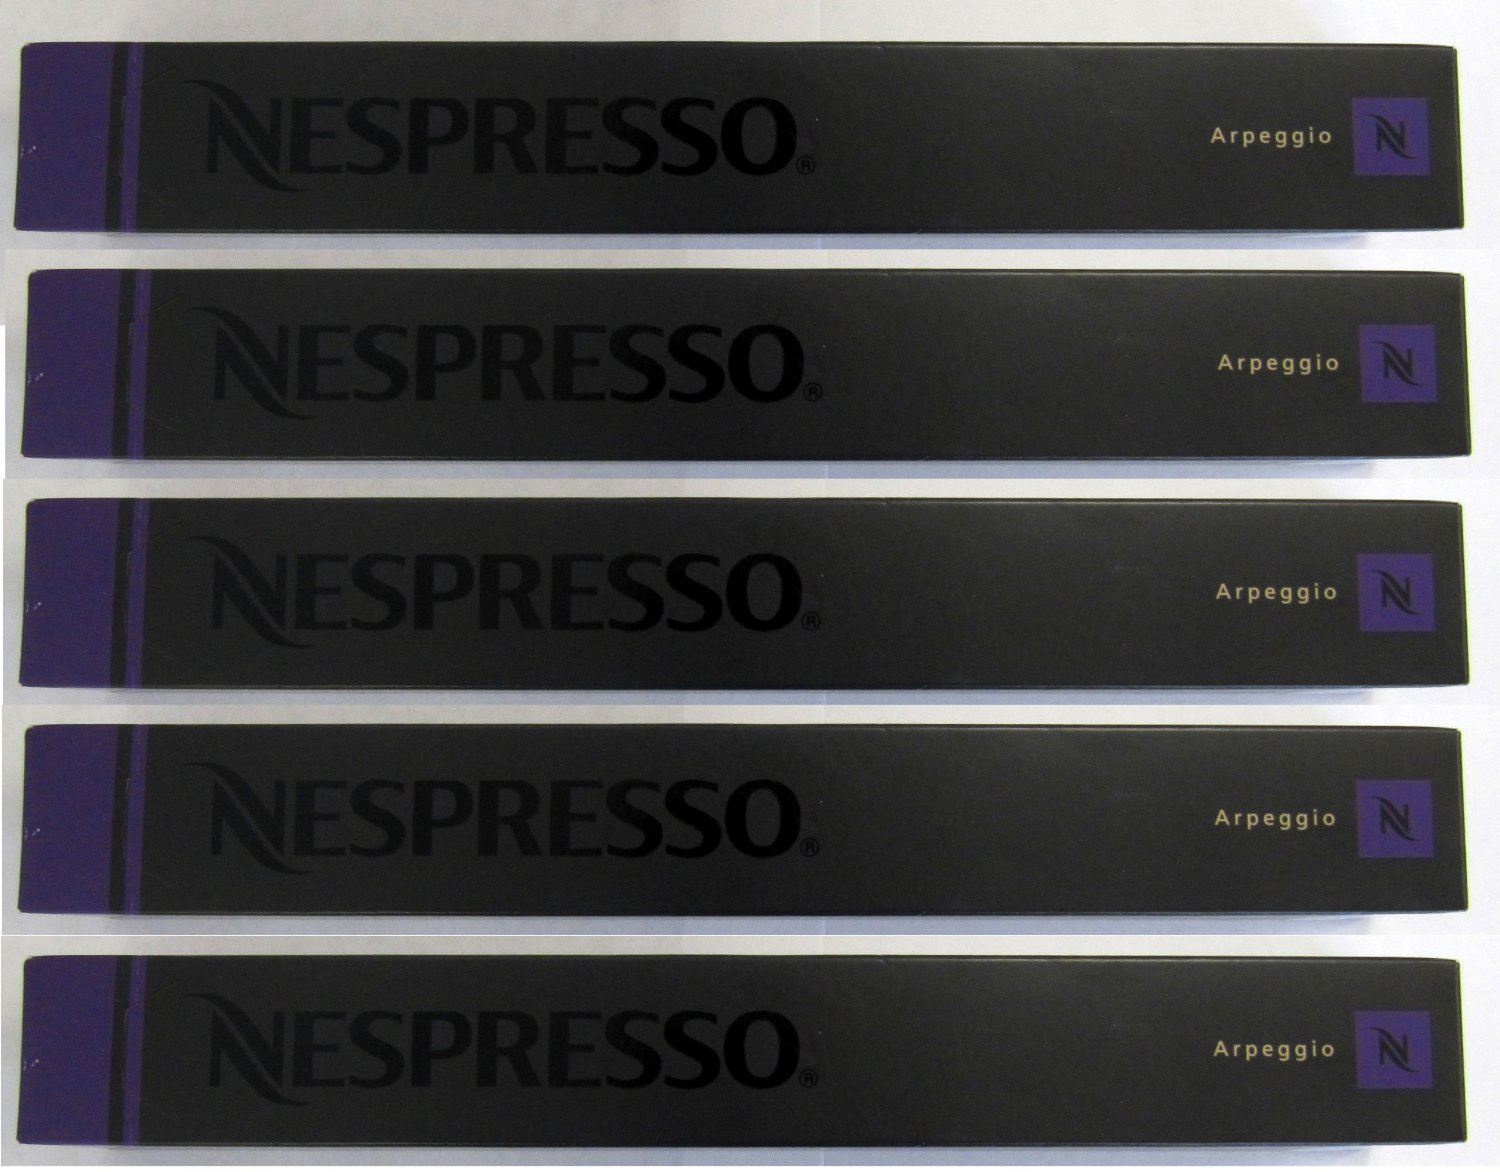 OriginalLine Nespresso: Arpeggio, 50 Count - NOT compatible with Vertuoline